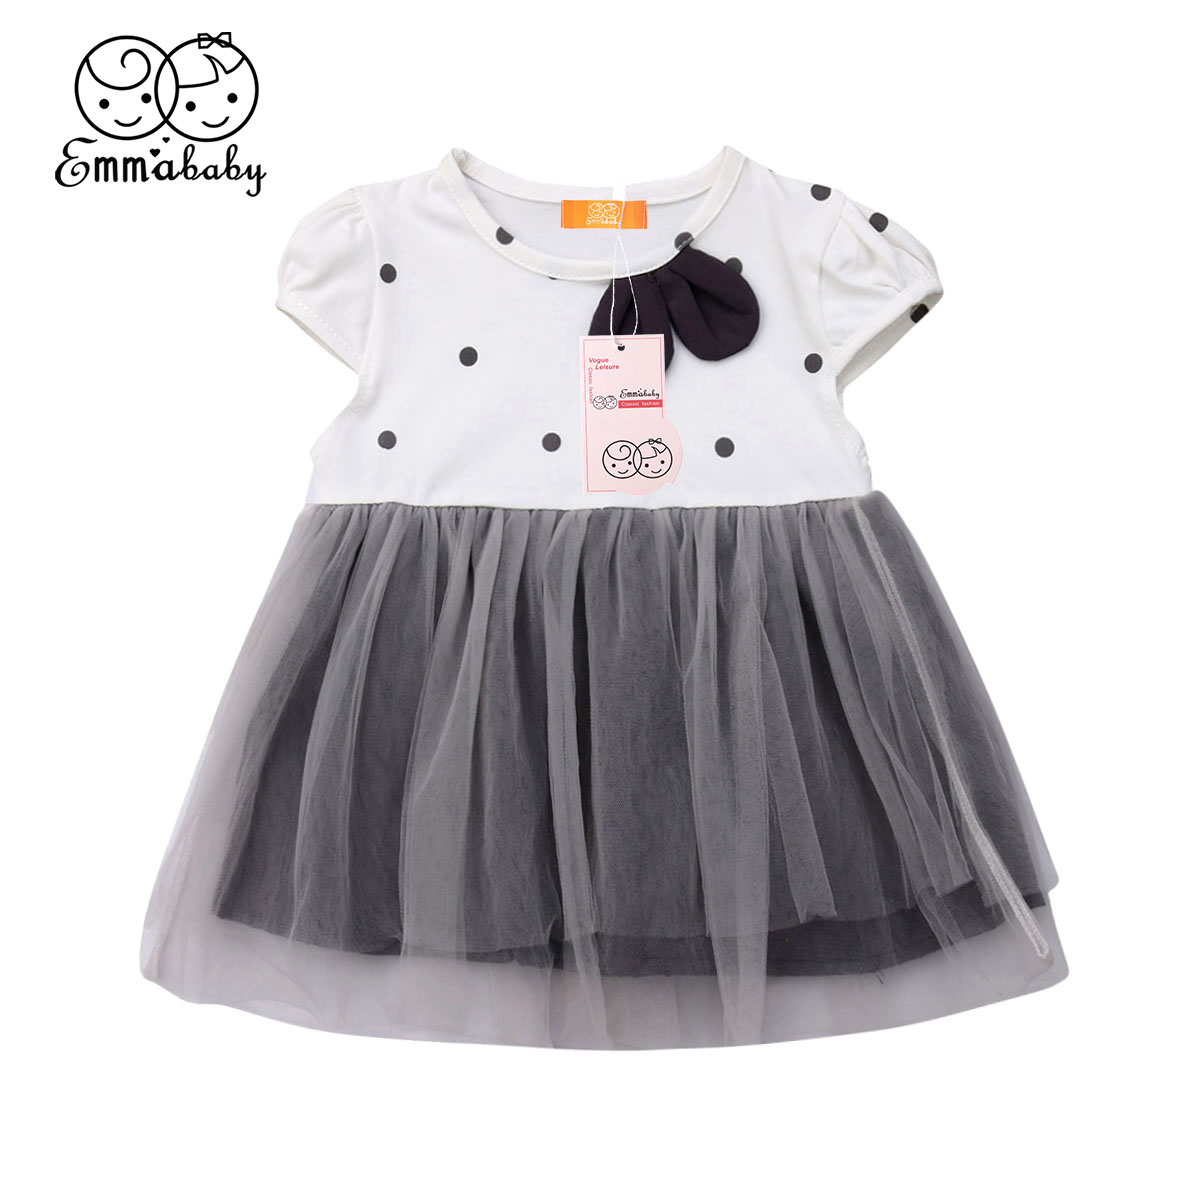 Toddler Baby Girl Princess Plaid Dress Pageant Wedding Party Tutu Dresses 2PCS